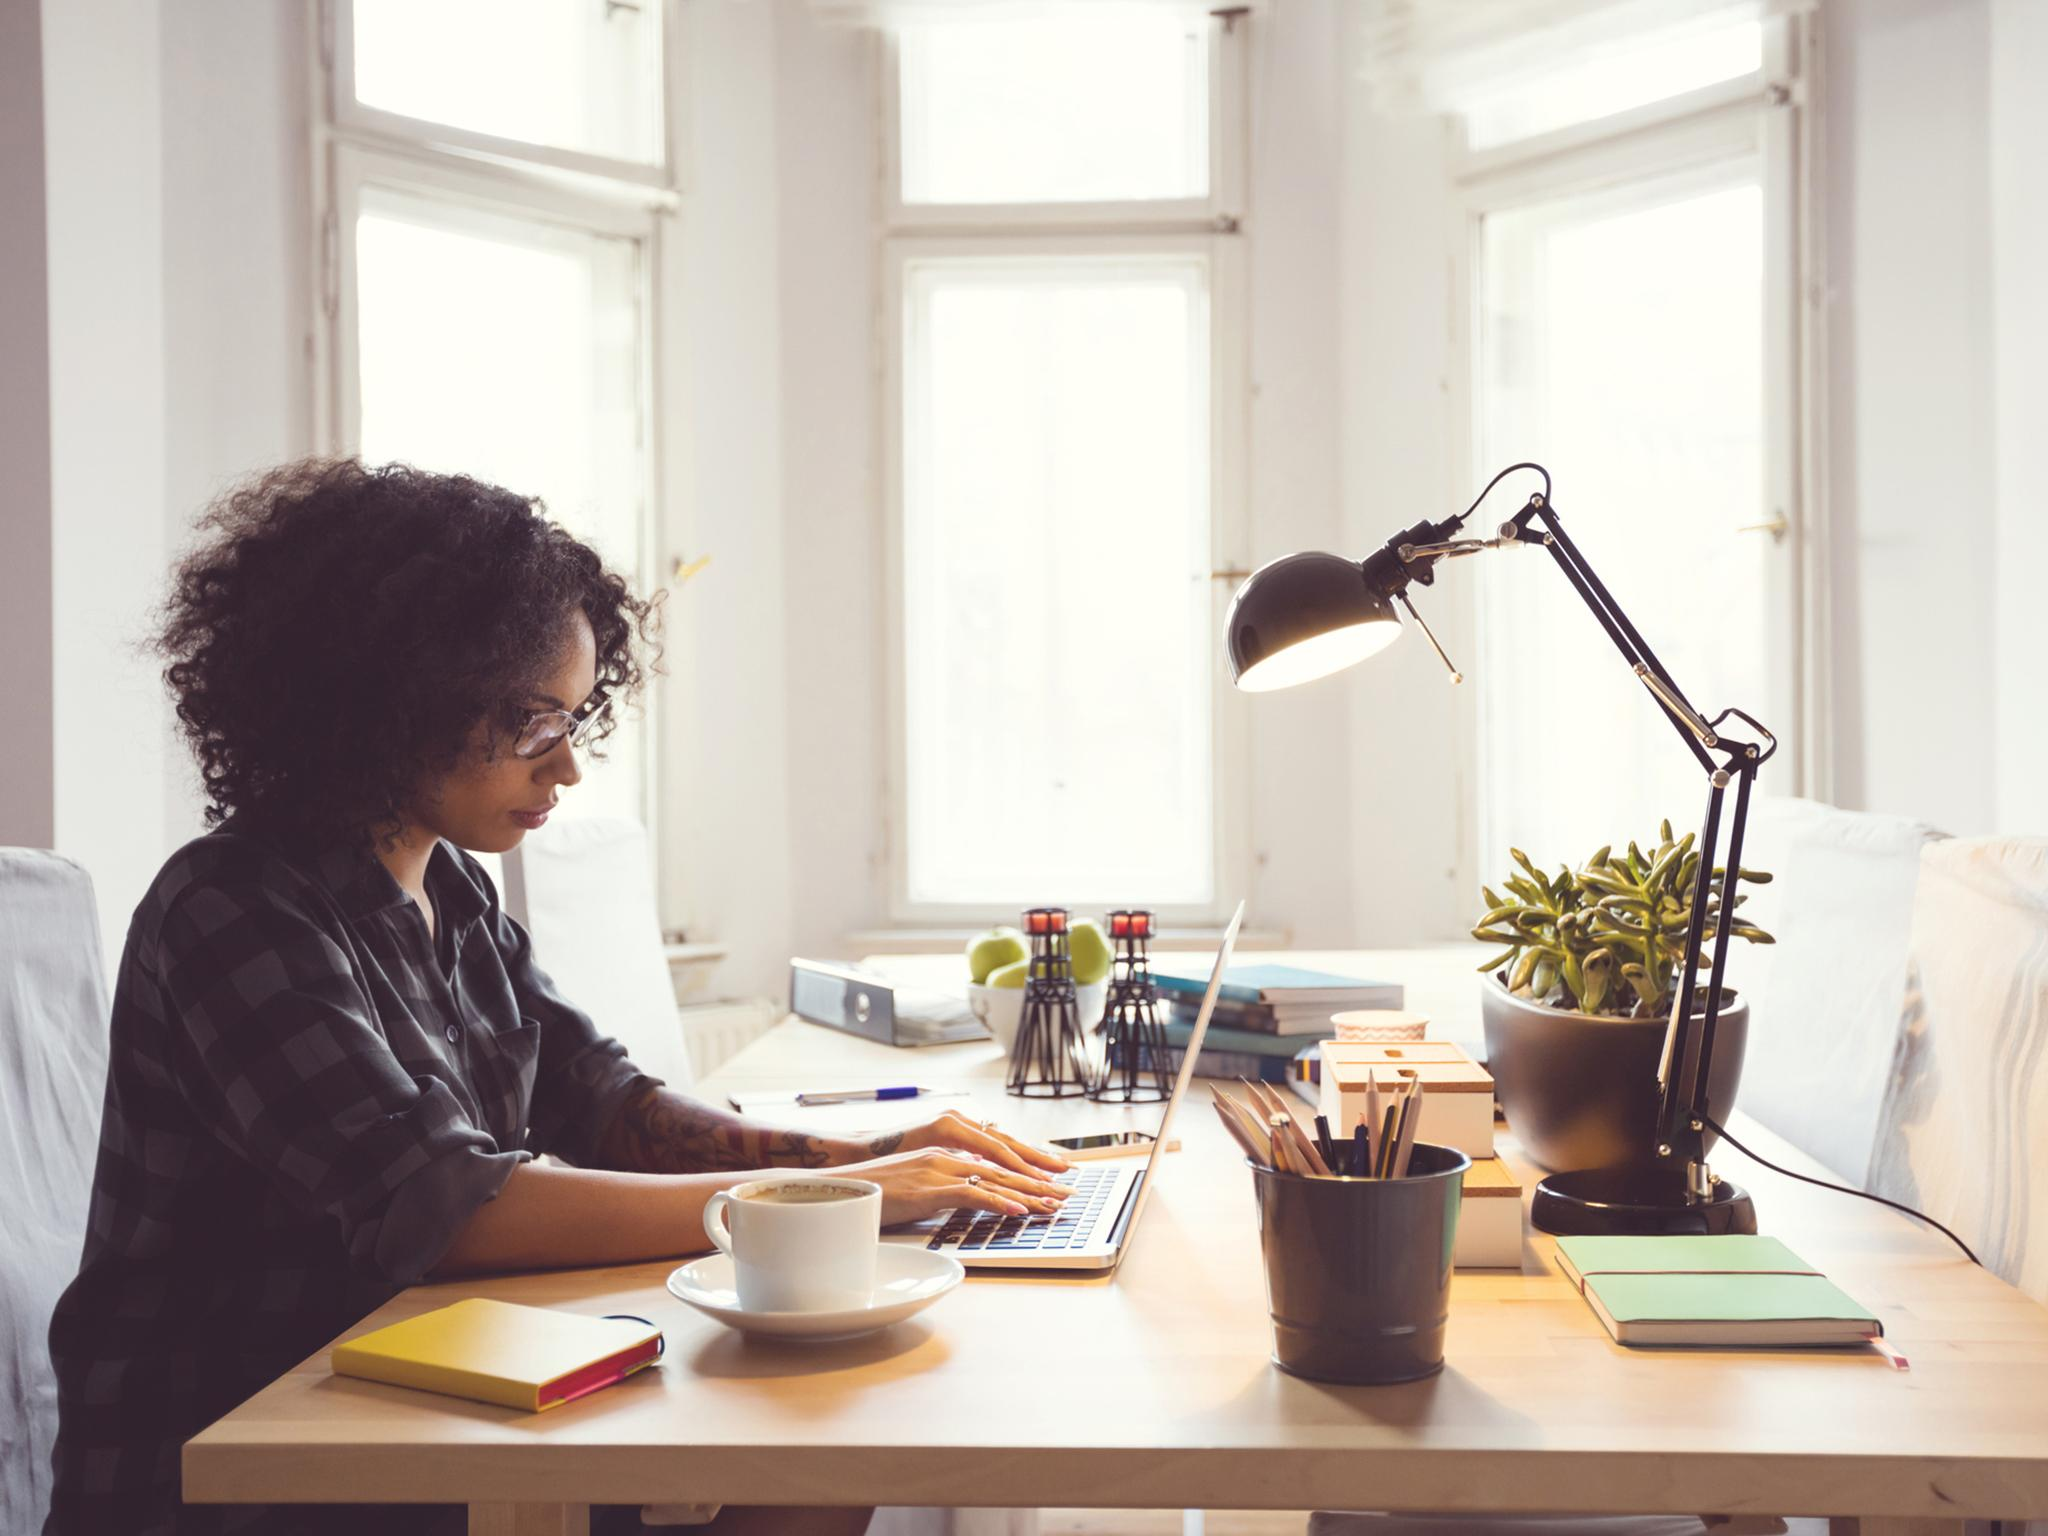 Heatwave: What are your employer's obligations to you when working from home?